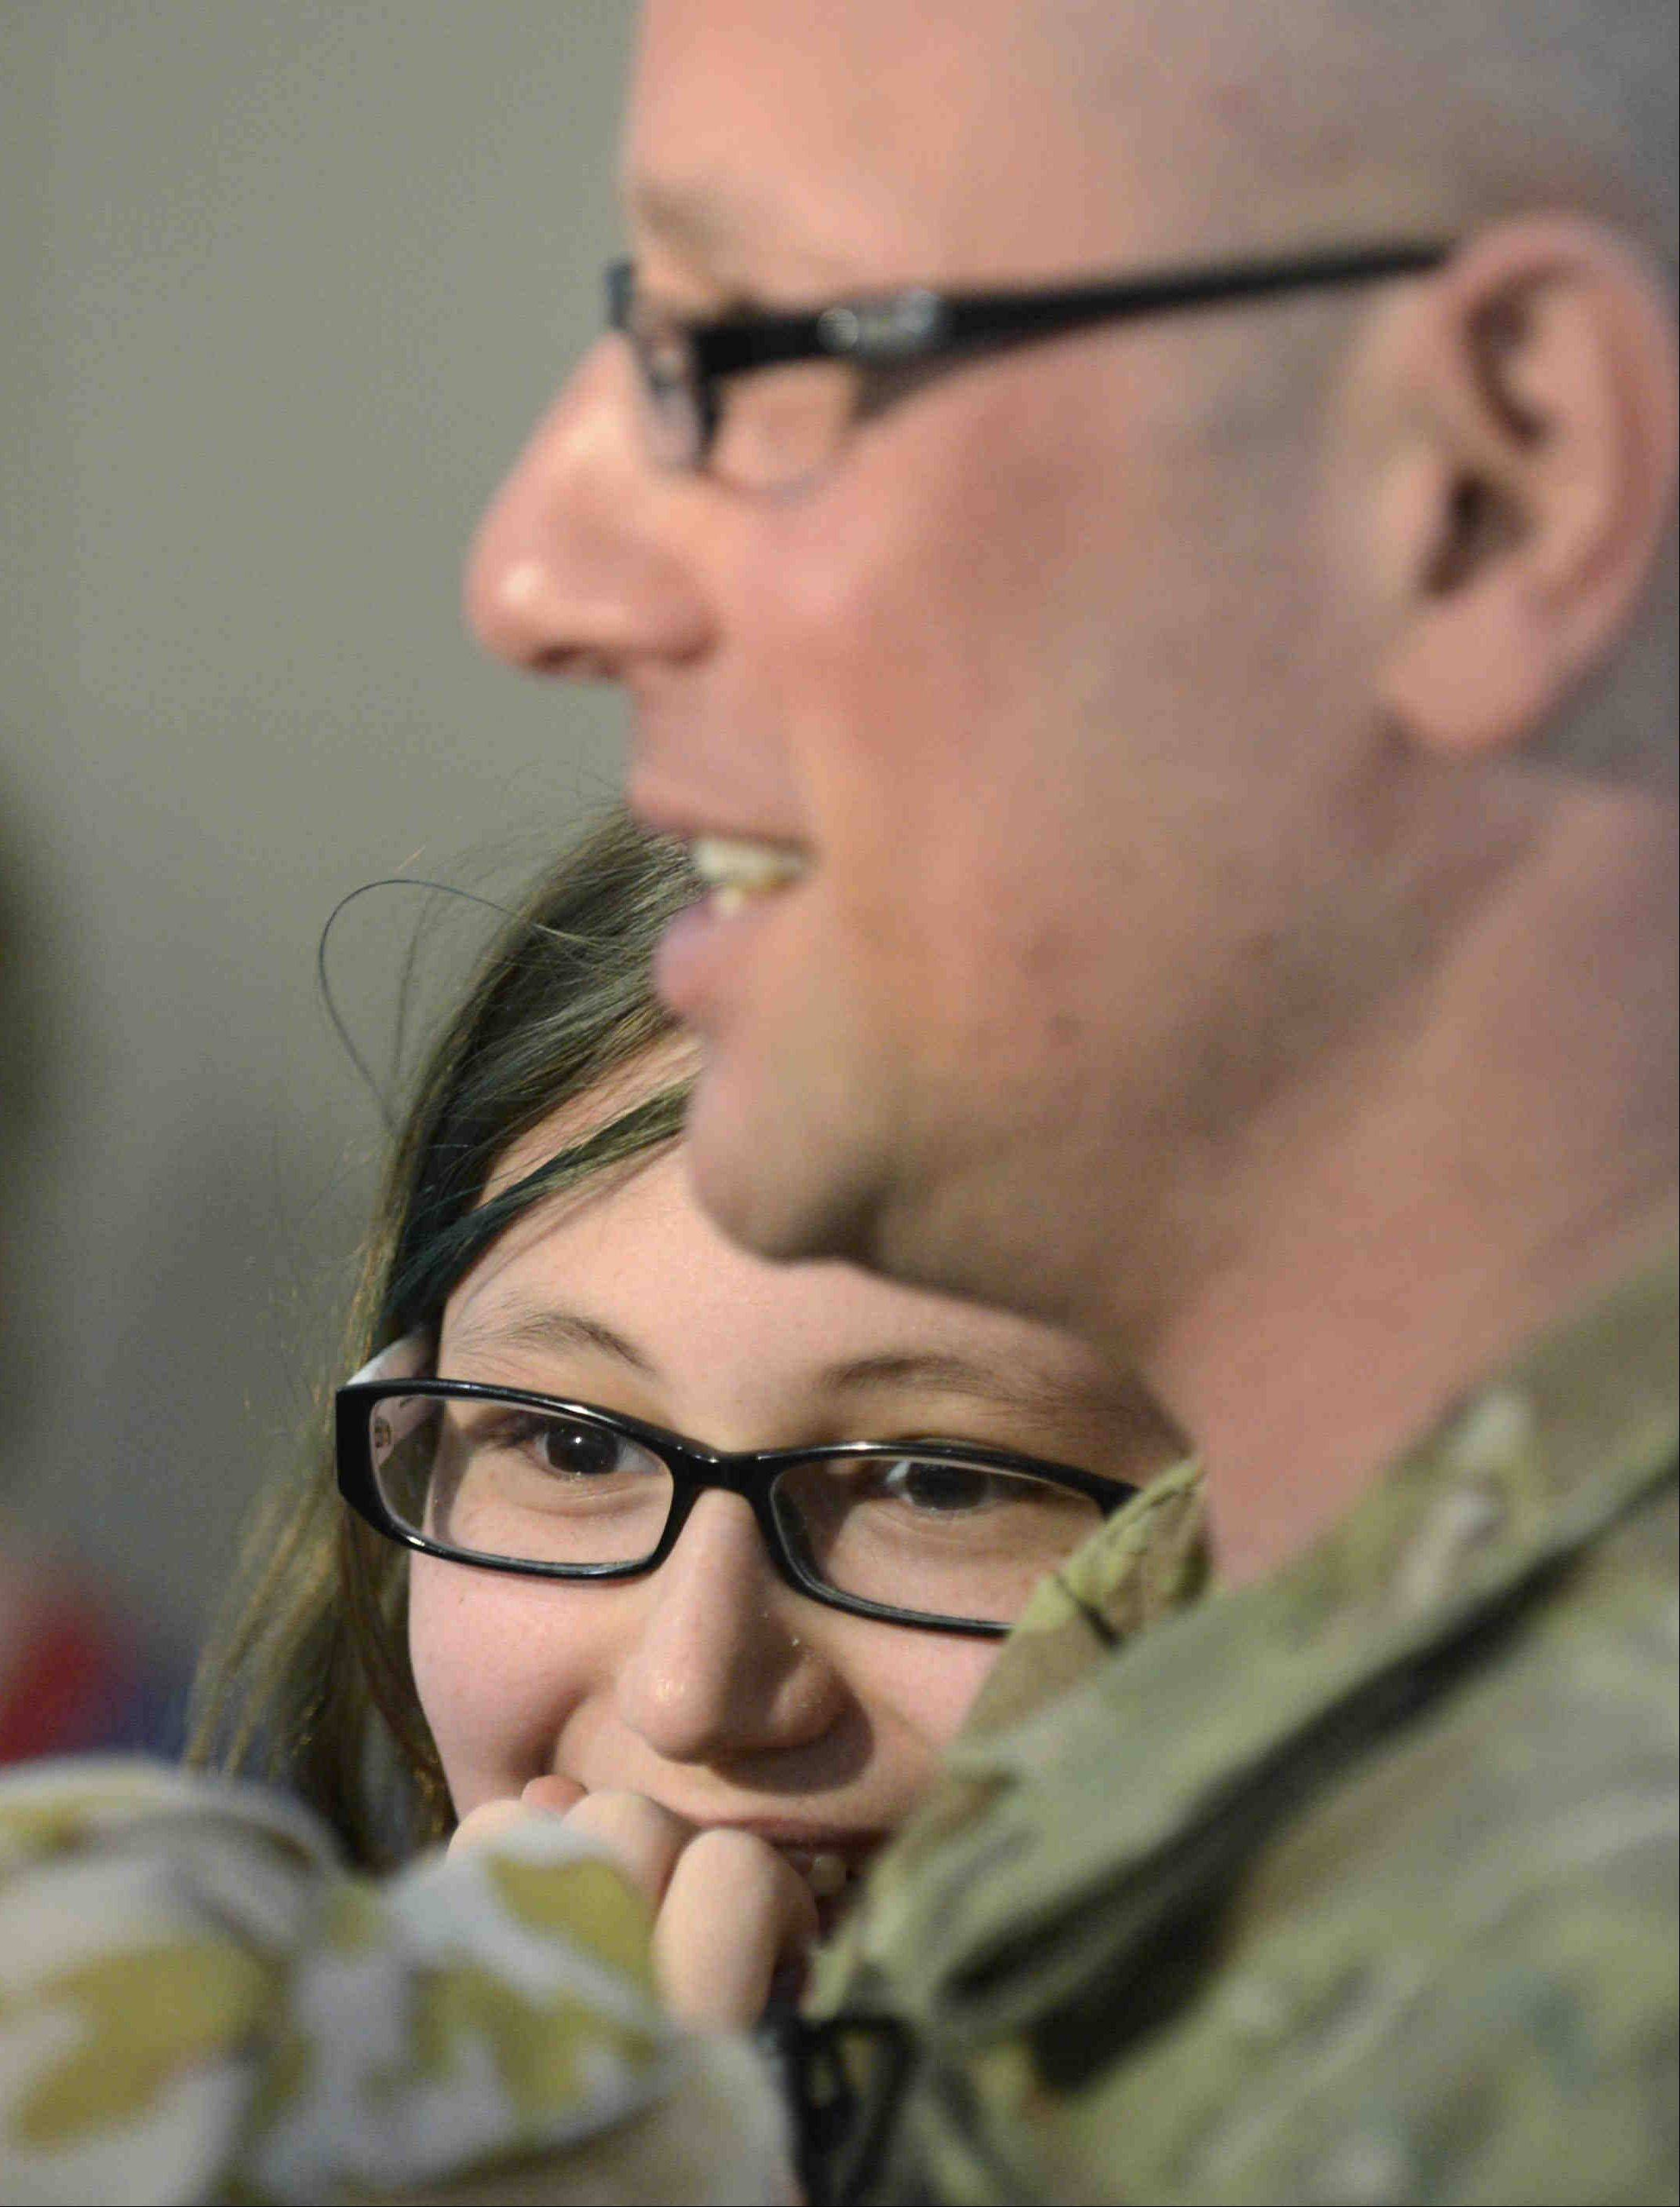 Lt. Jordon Wolf and daughter Kayla, 11, had a surprise reunion Thursday at a Streamwood school.